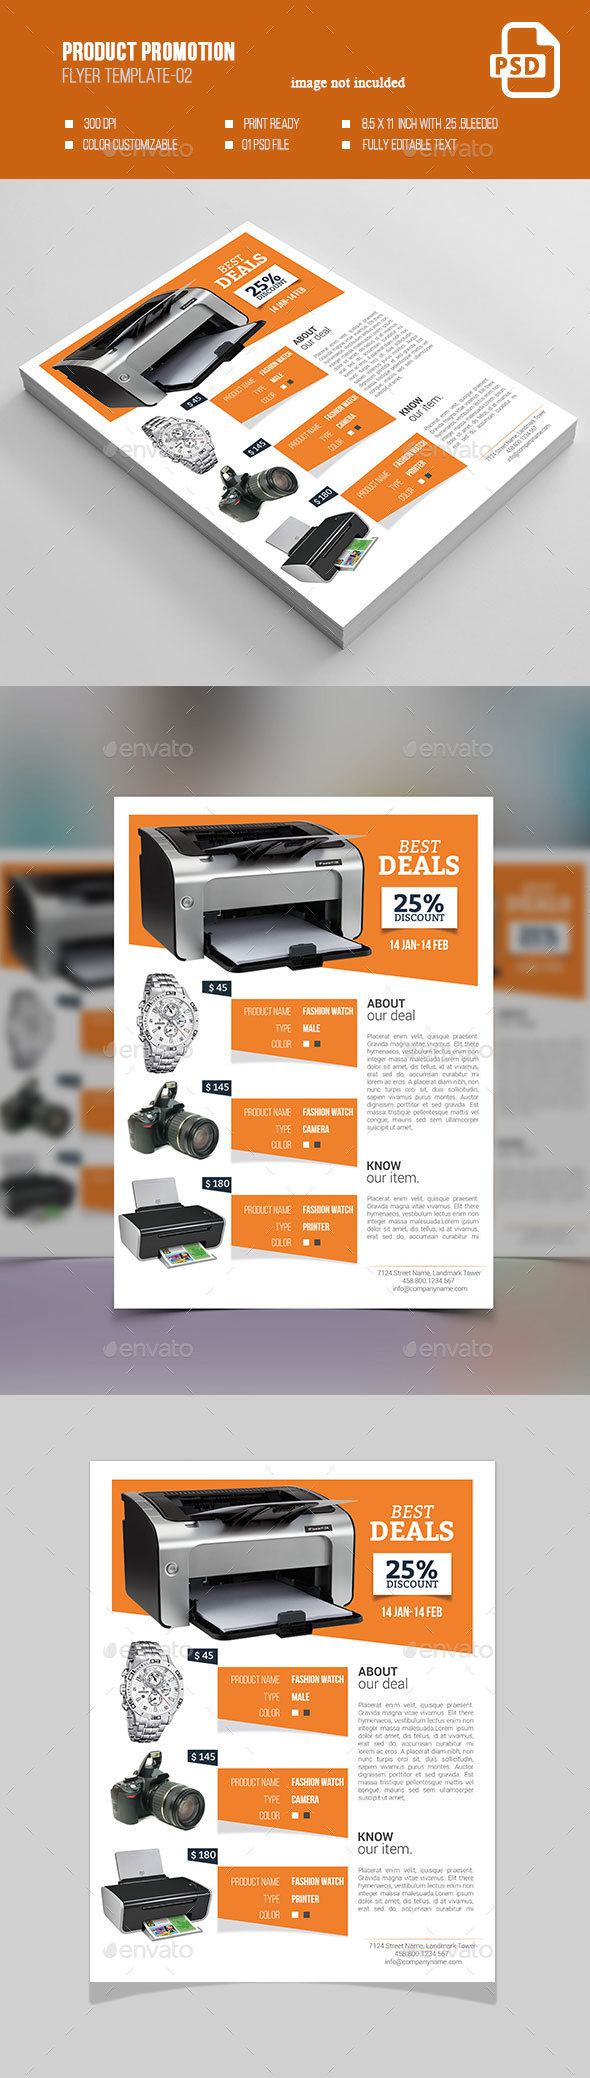 Product Promotion Flyer-02 - Commerce Flyers